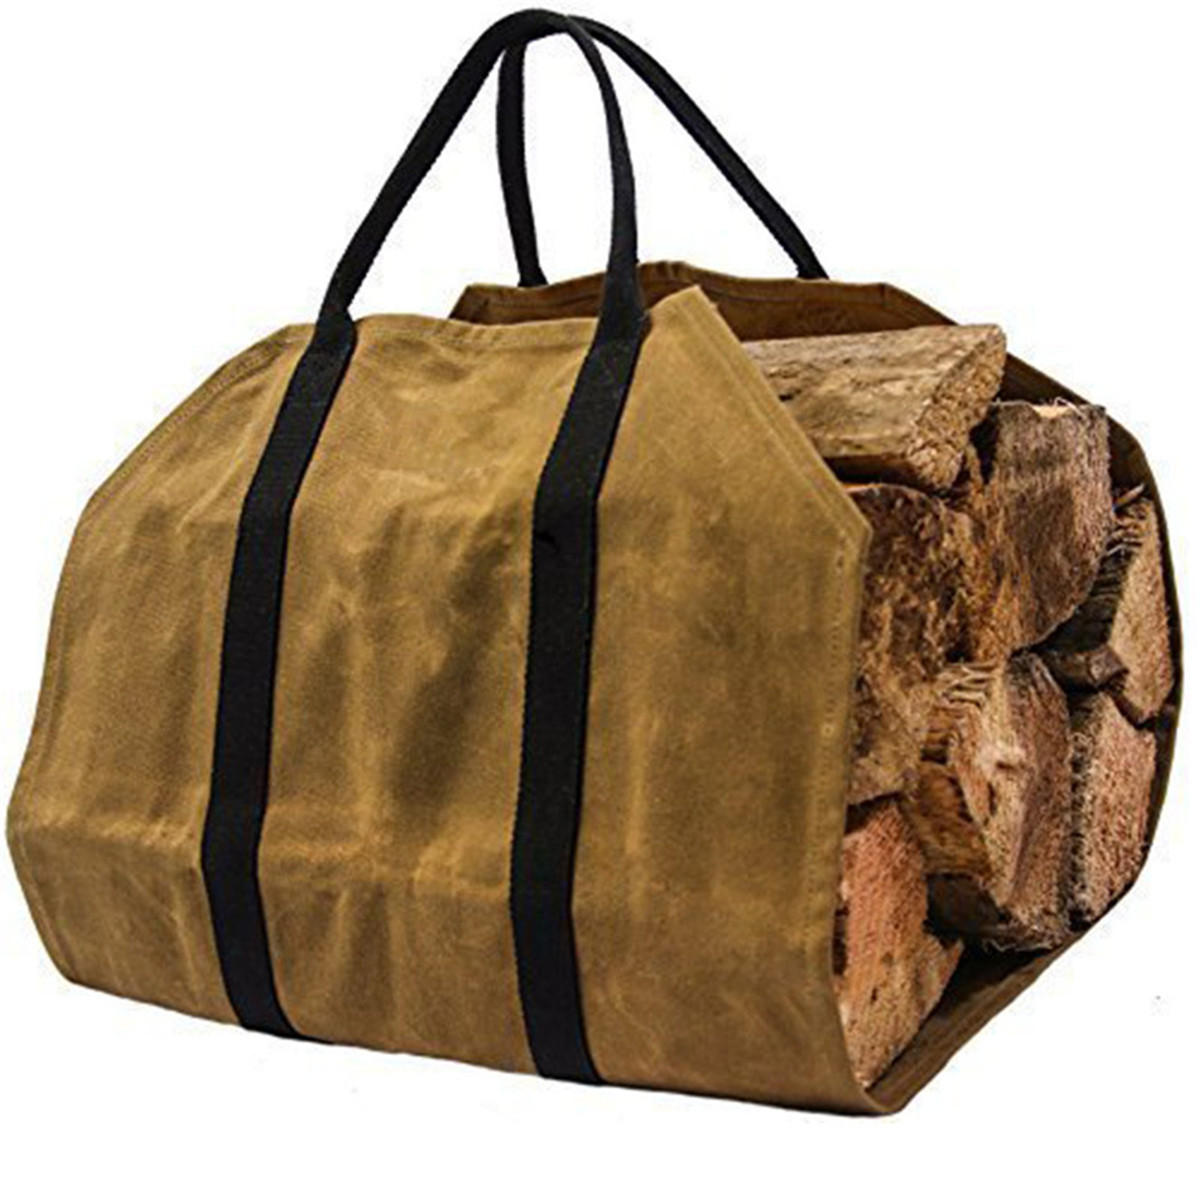 Khaki Firewood Carrier Log Wood Carrying Bag For Fireplace 16oz Waxed Canvas